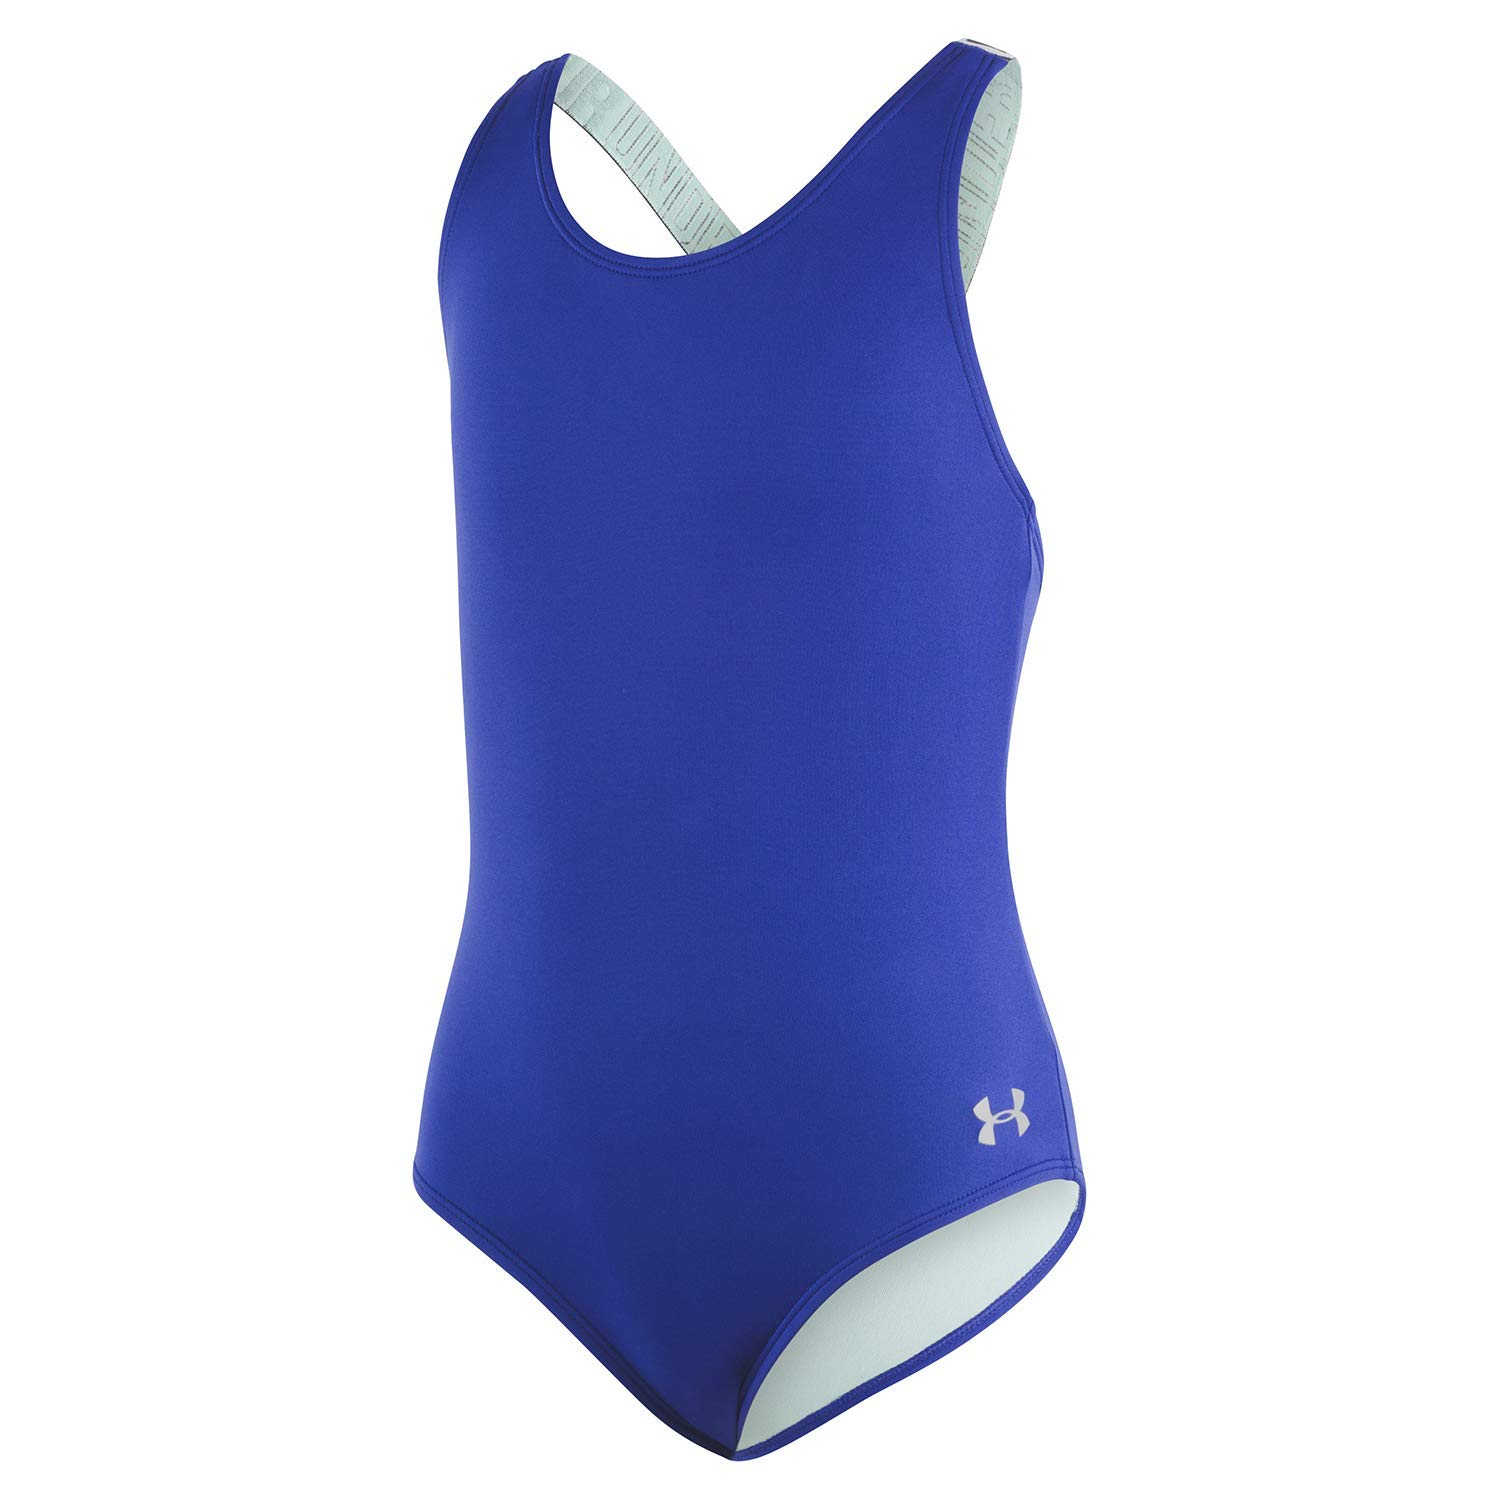 Under Armour Big Girls' One Piece Swimsuit, Formation Blue-S19, 12